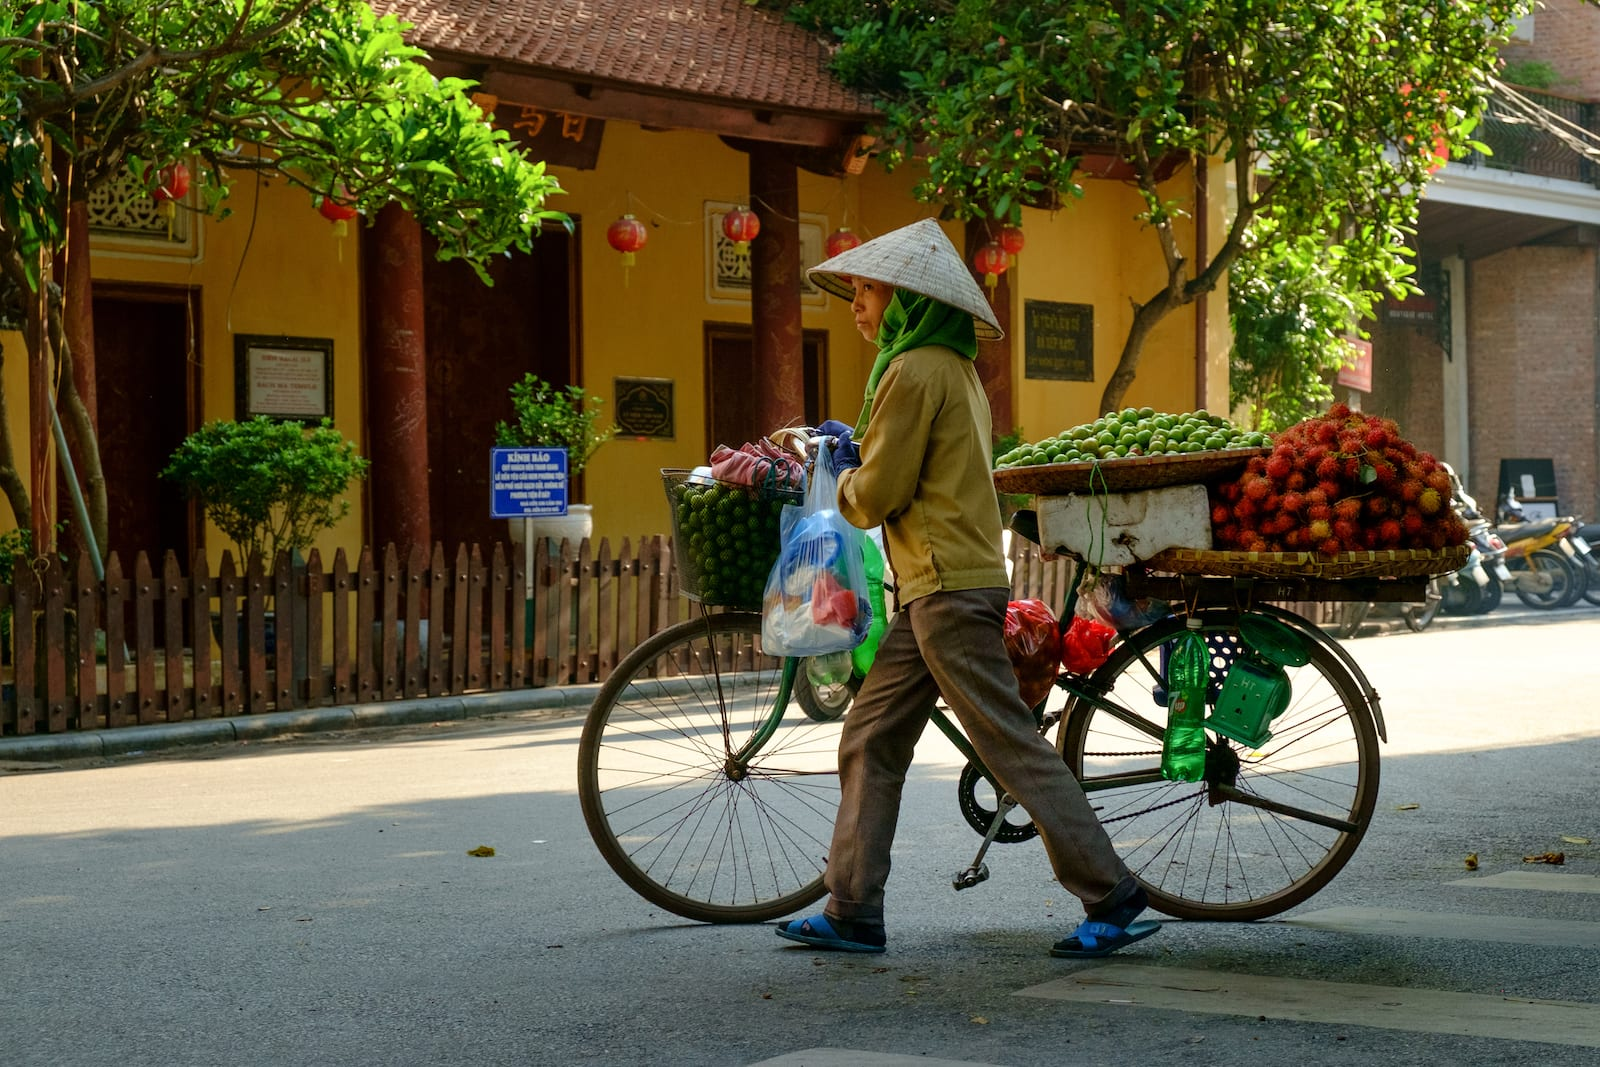 Fruit vendor making her rounds in July, Hanoi, Vietnam